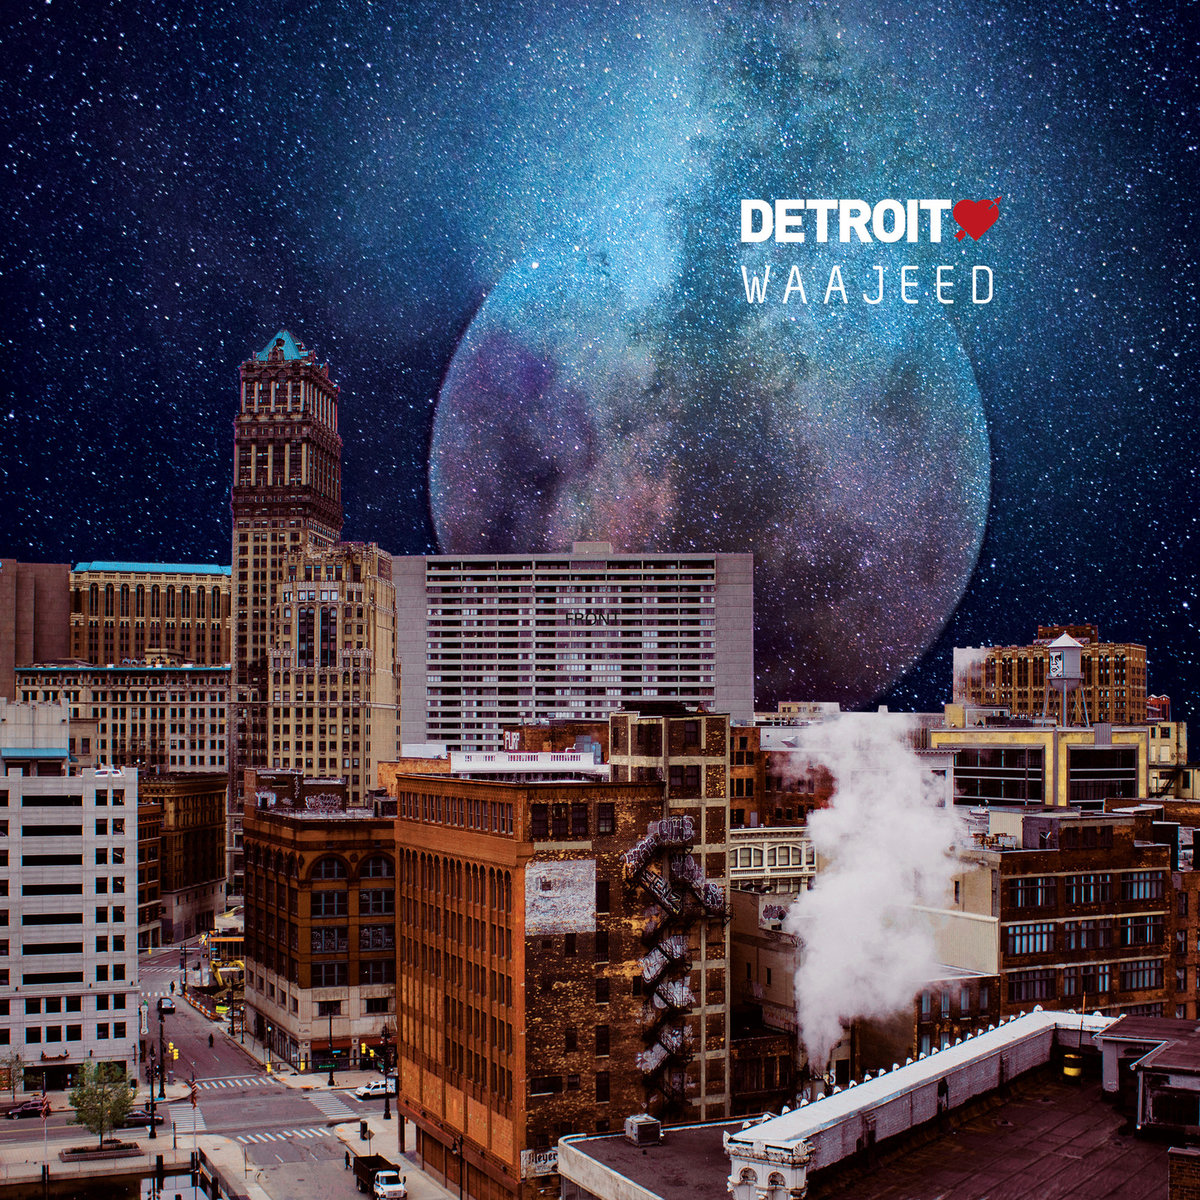 Detroit Love by Waajeed